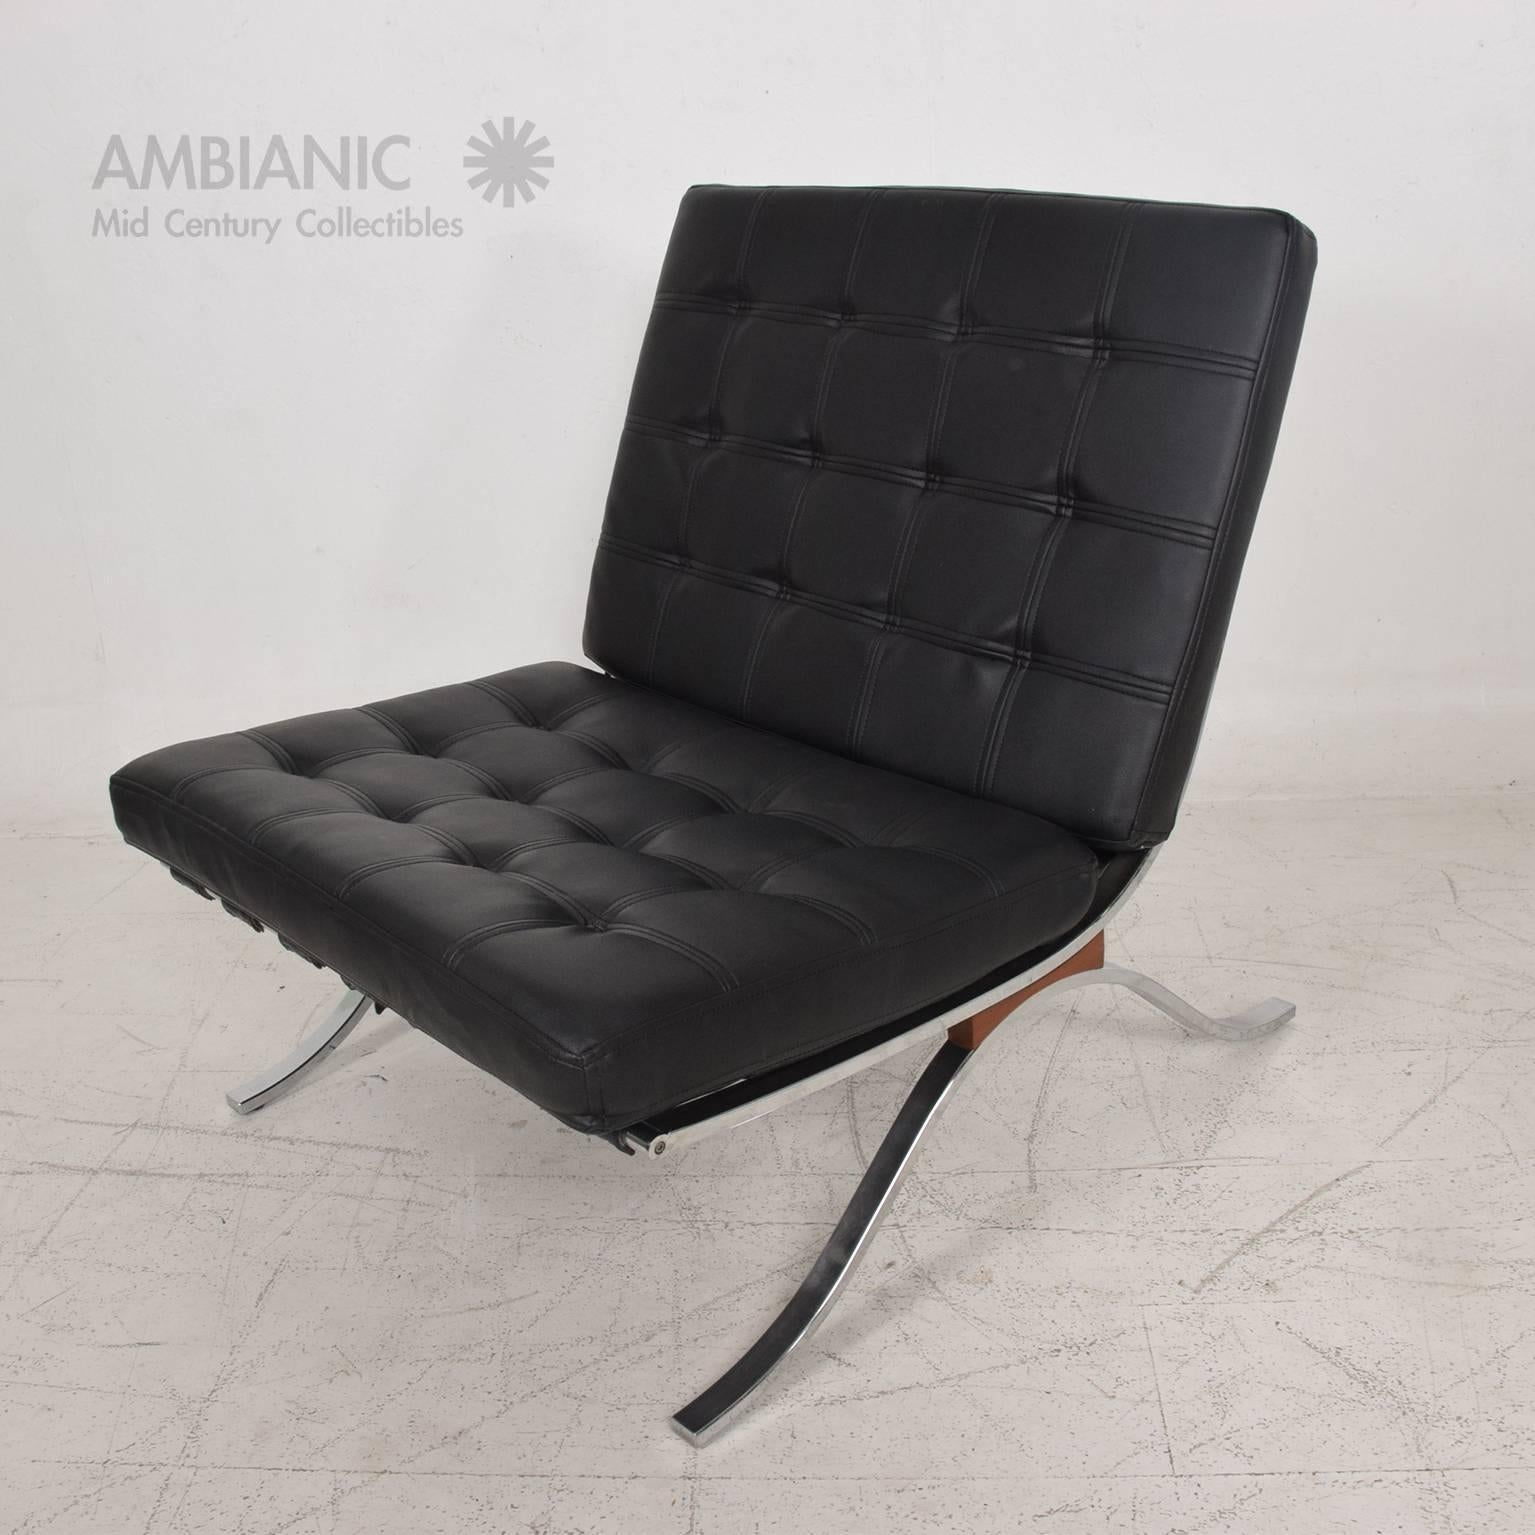 Mid Century Modern Selig Barcelona Chair Chrome And Naugahyde In Good  Condition For Sale In